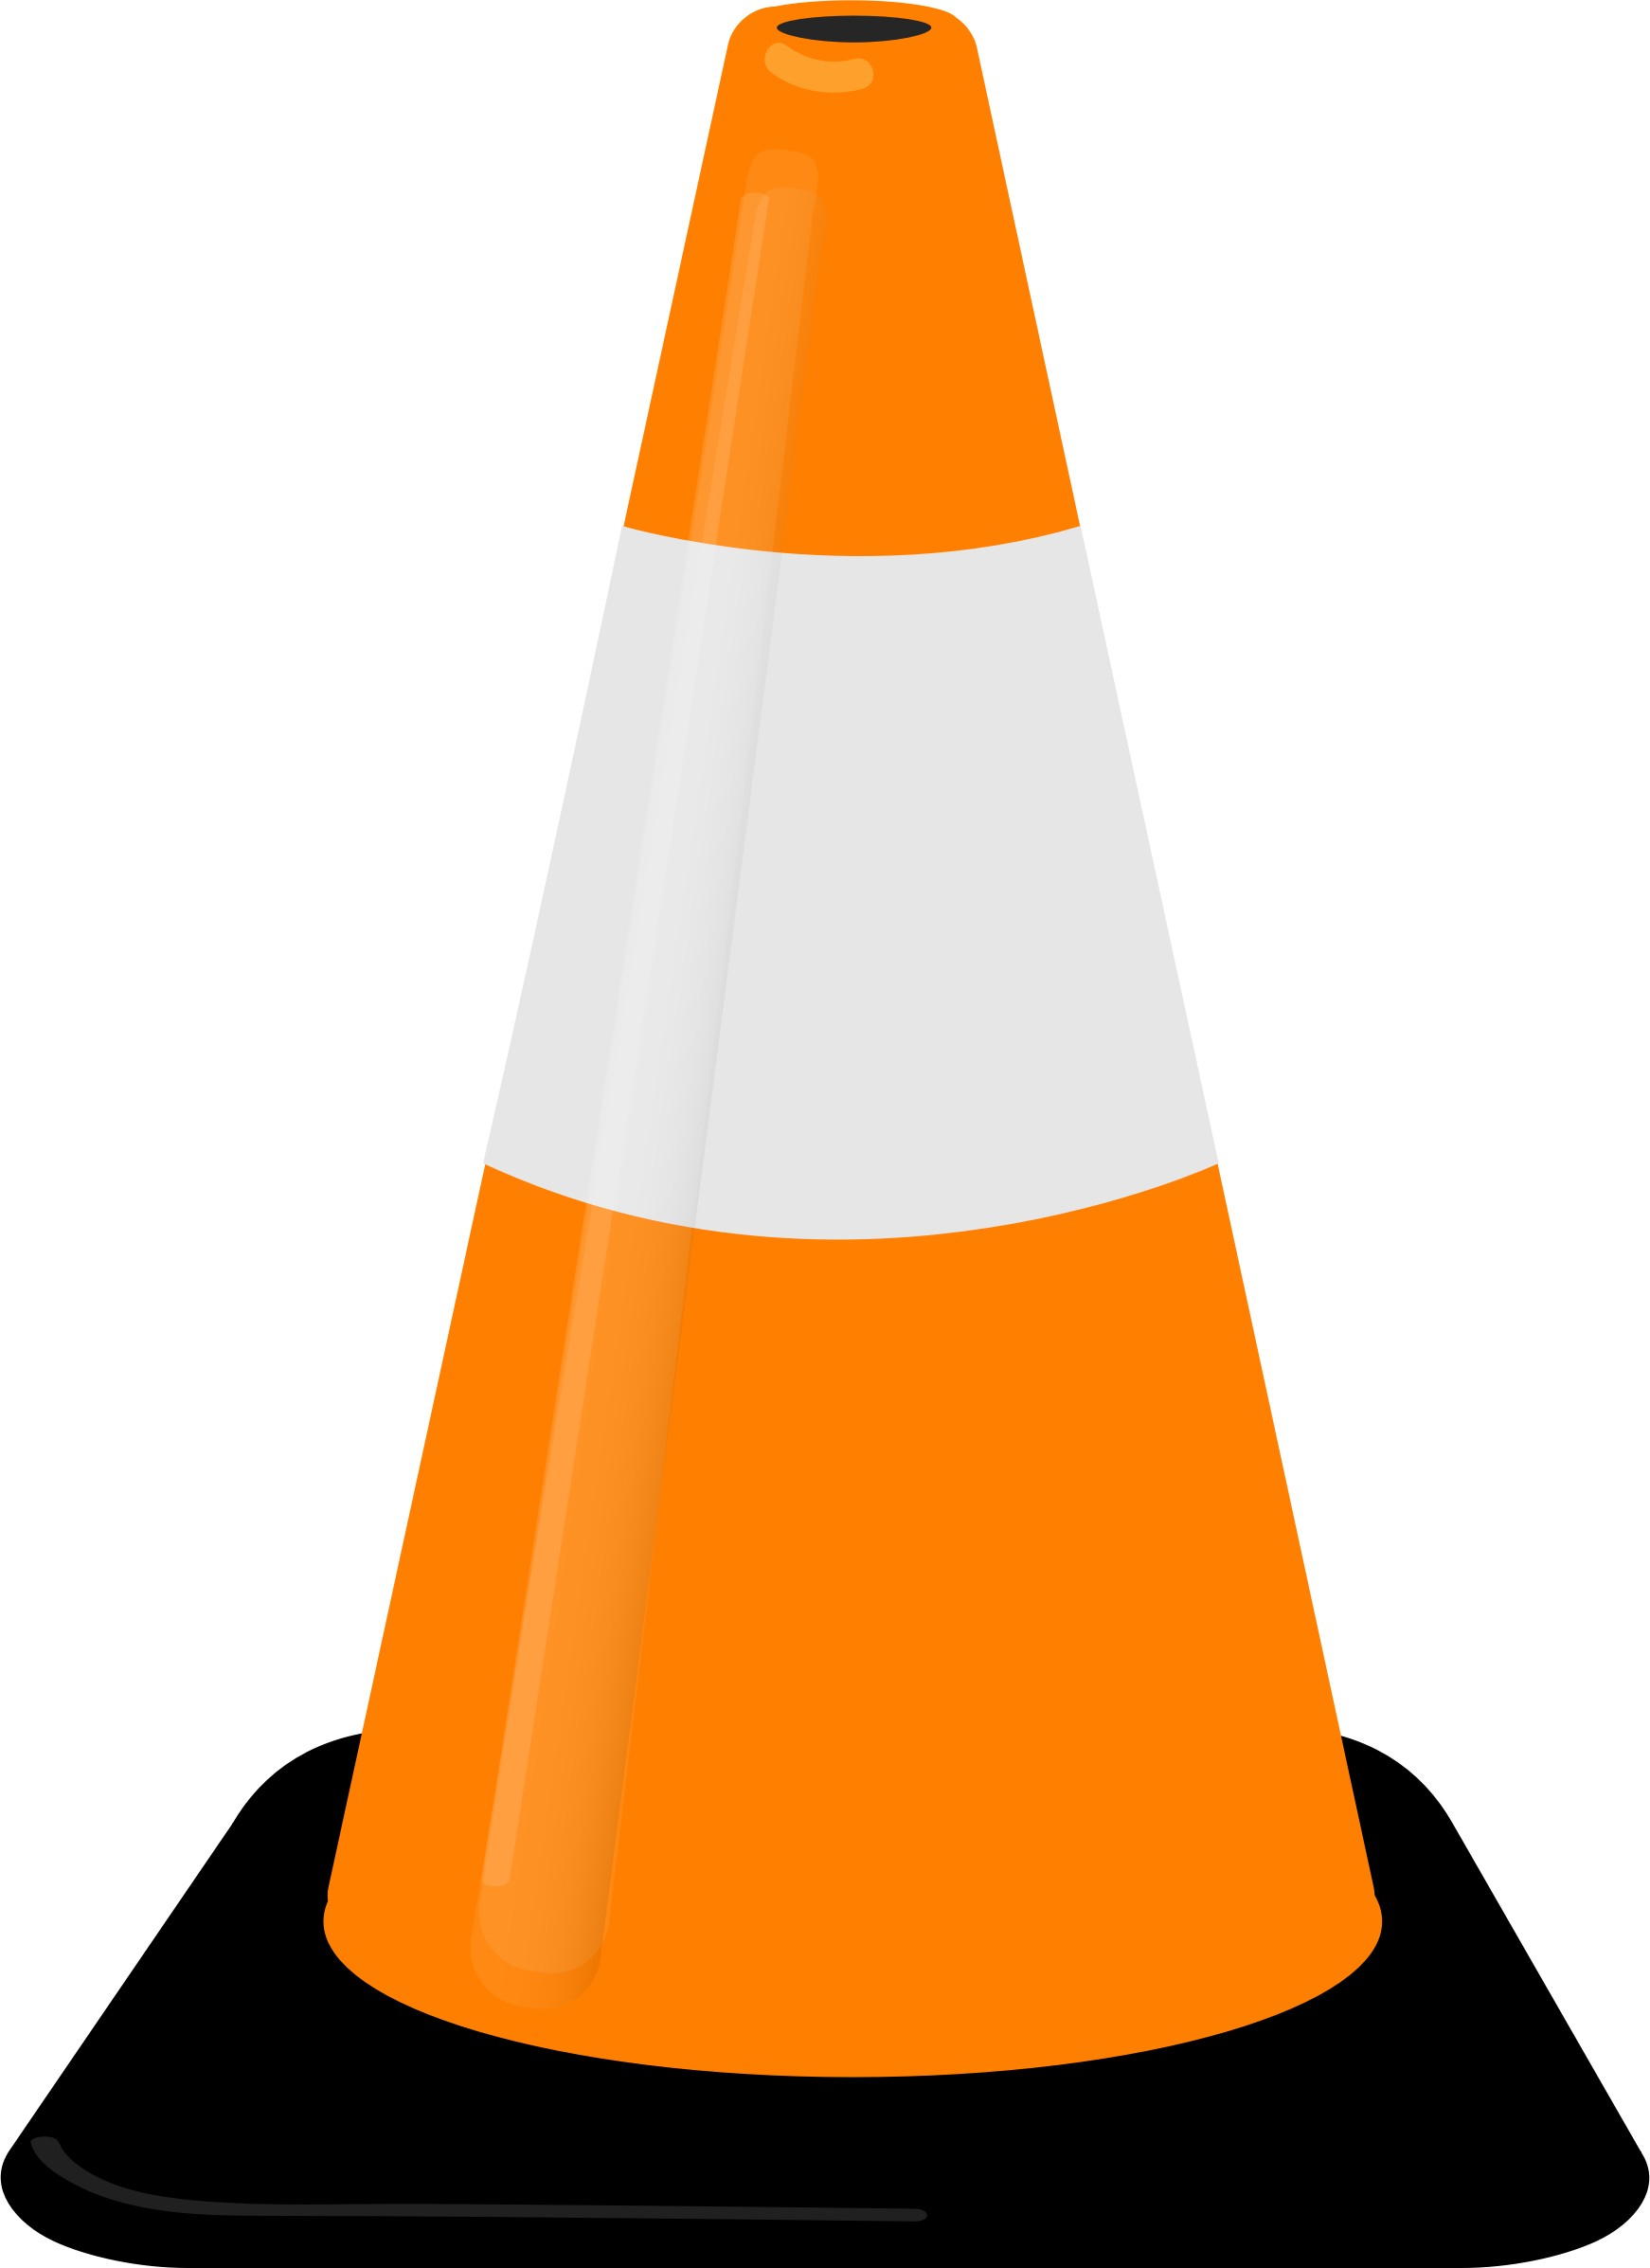 clipart freeuse library Cone clipart. Plain free on dumielauxepices.